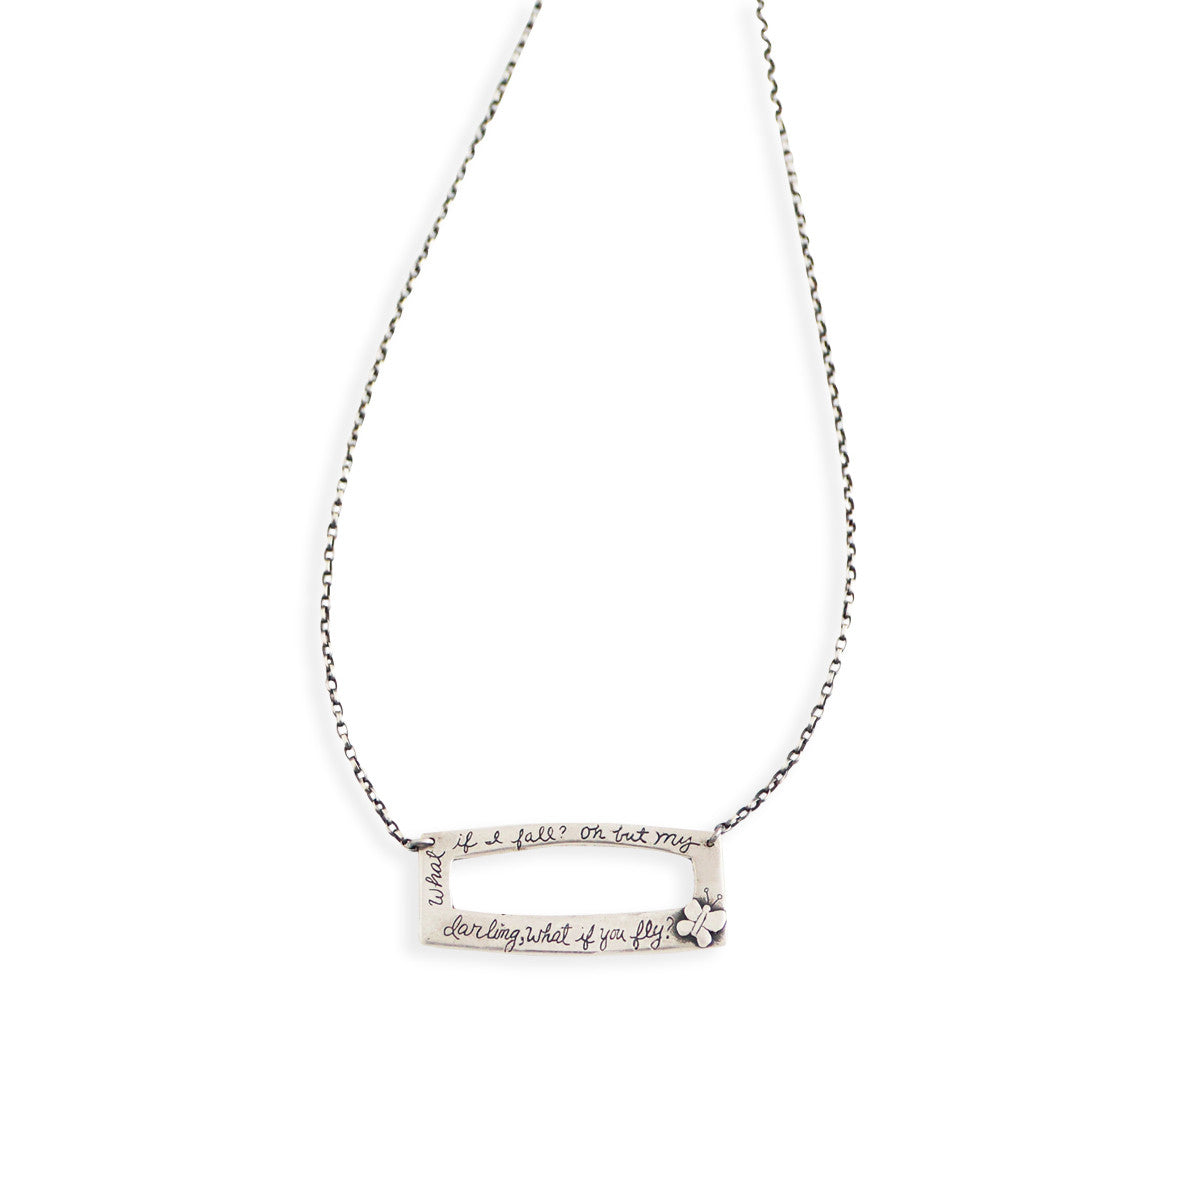 What if I fall? Oh but my darling, what if you fly? Necklace